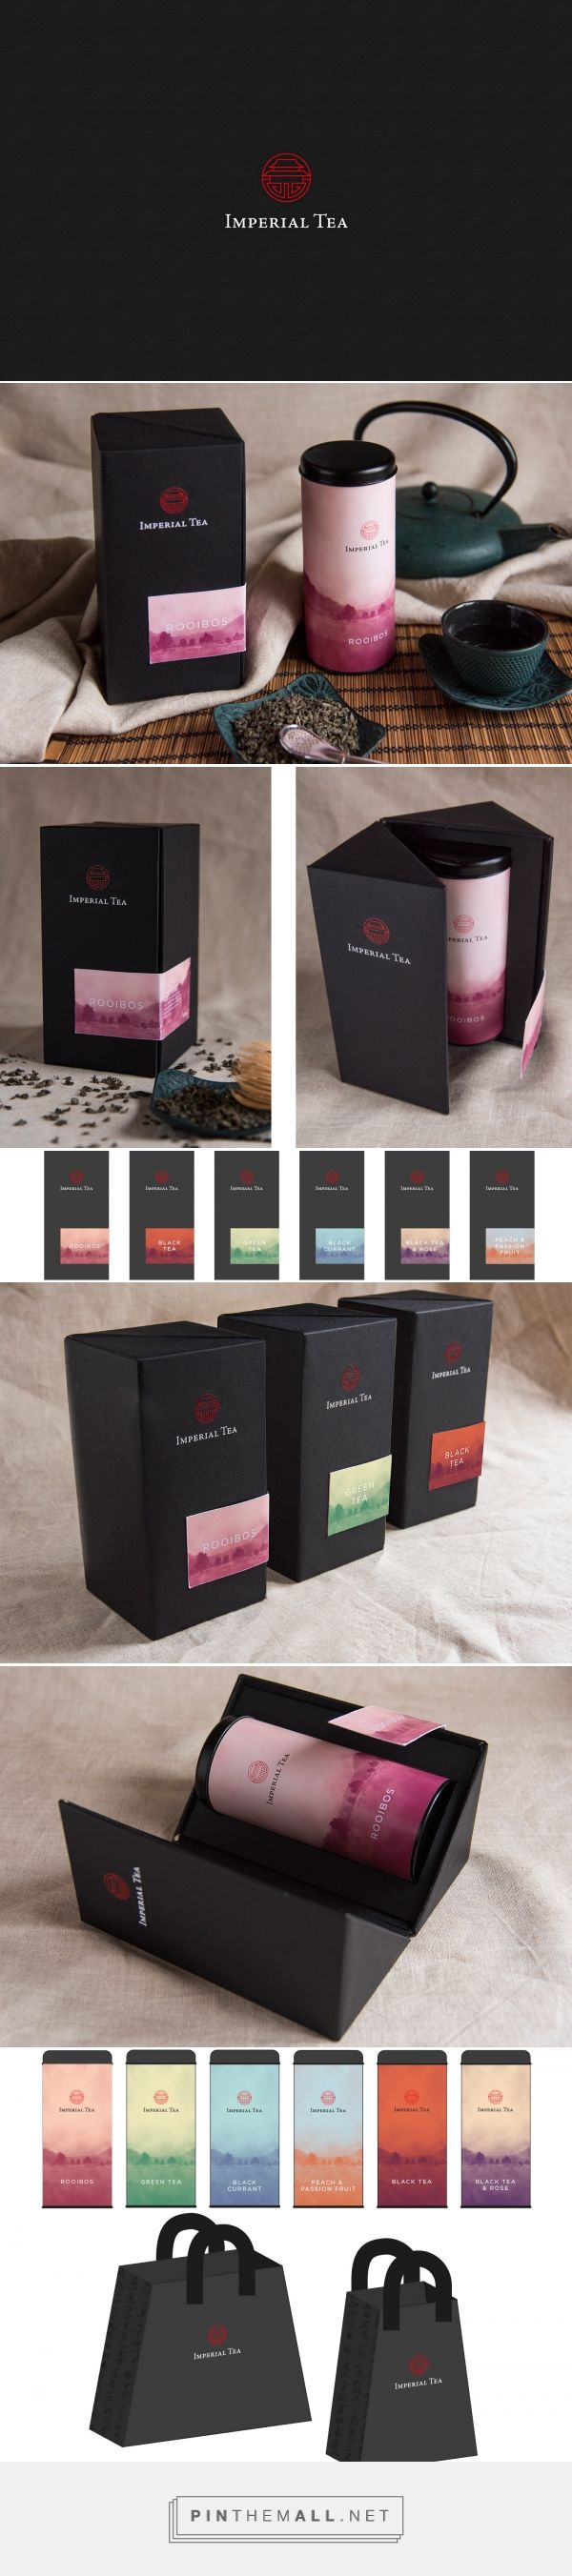 Graphic design, branding and packaging for Imperial Tea on Behance by Lorenzo De Bon Vettorel Pedavena, Italy curated by Packaging Diva PD. Look at those shopping bags. Too bad it's just a concept.